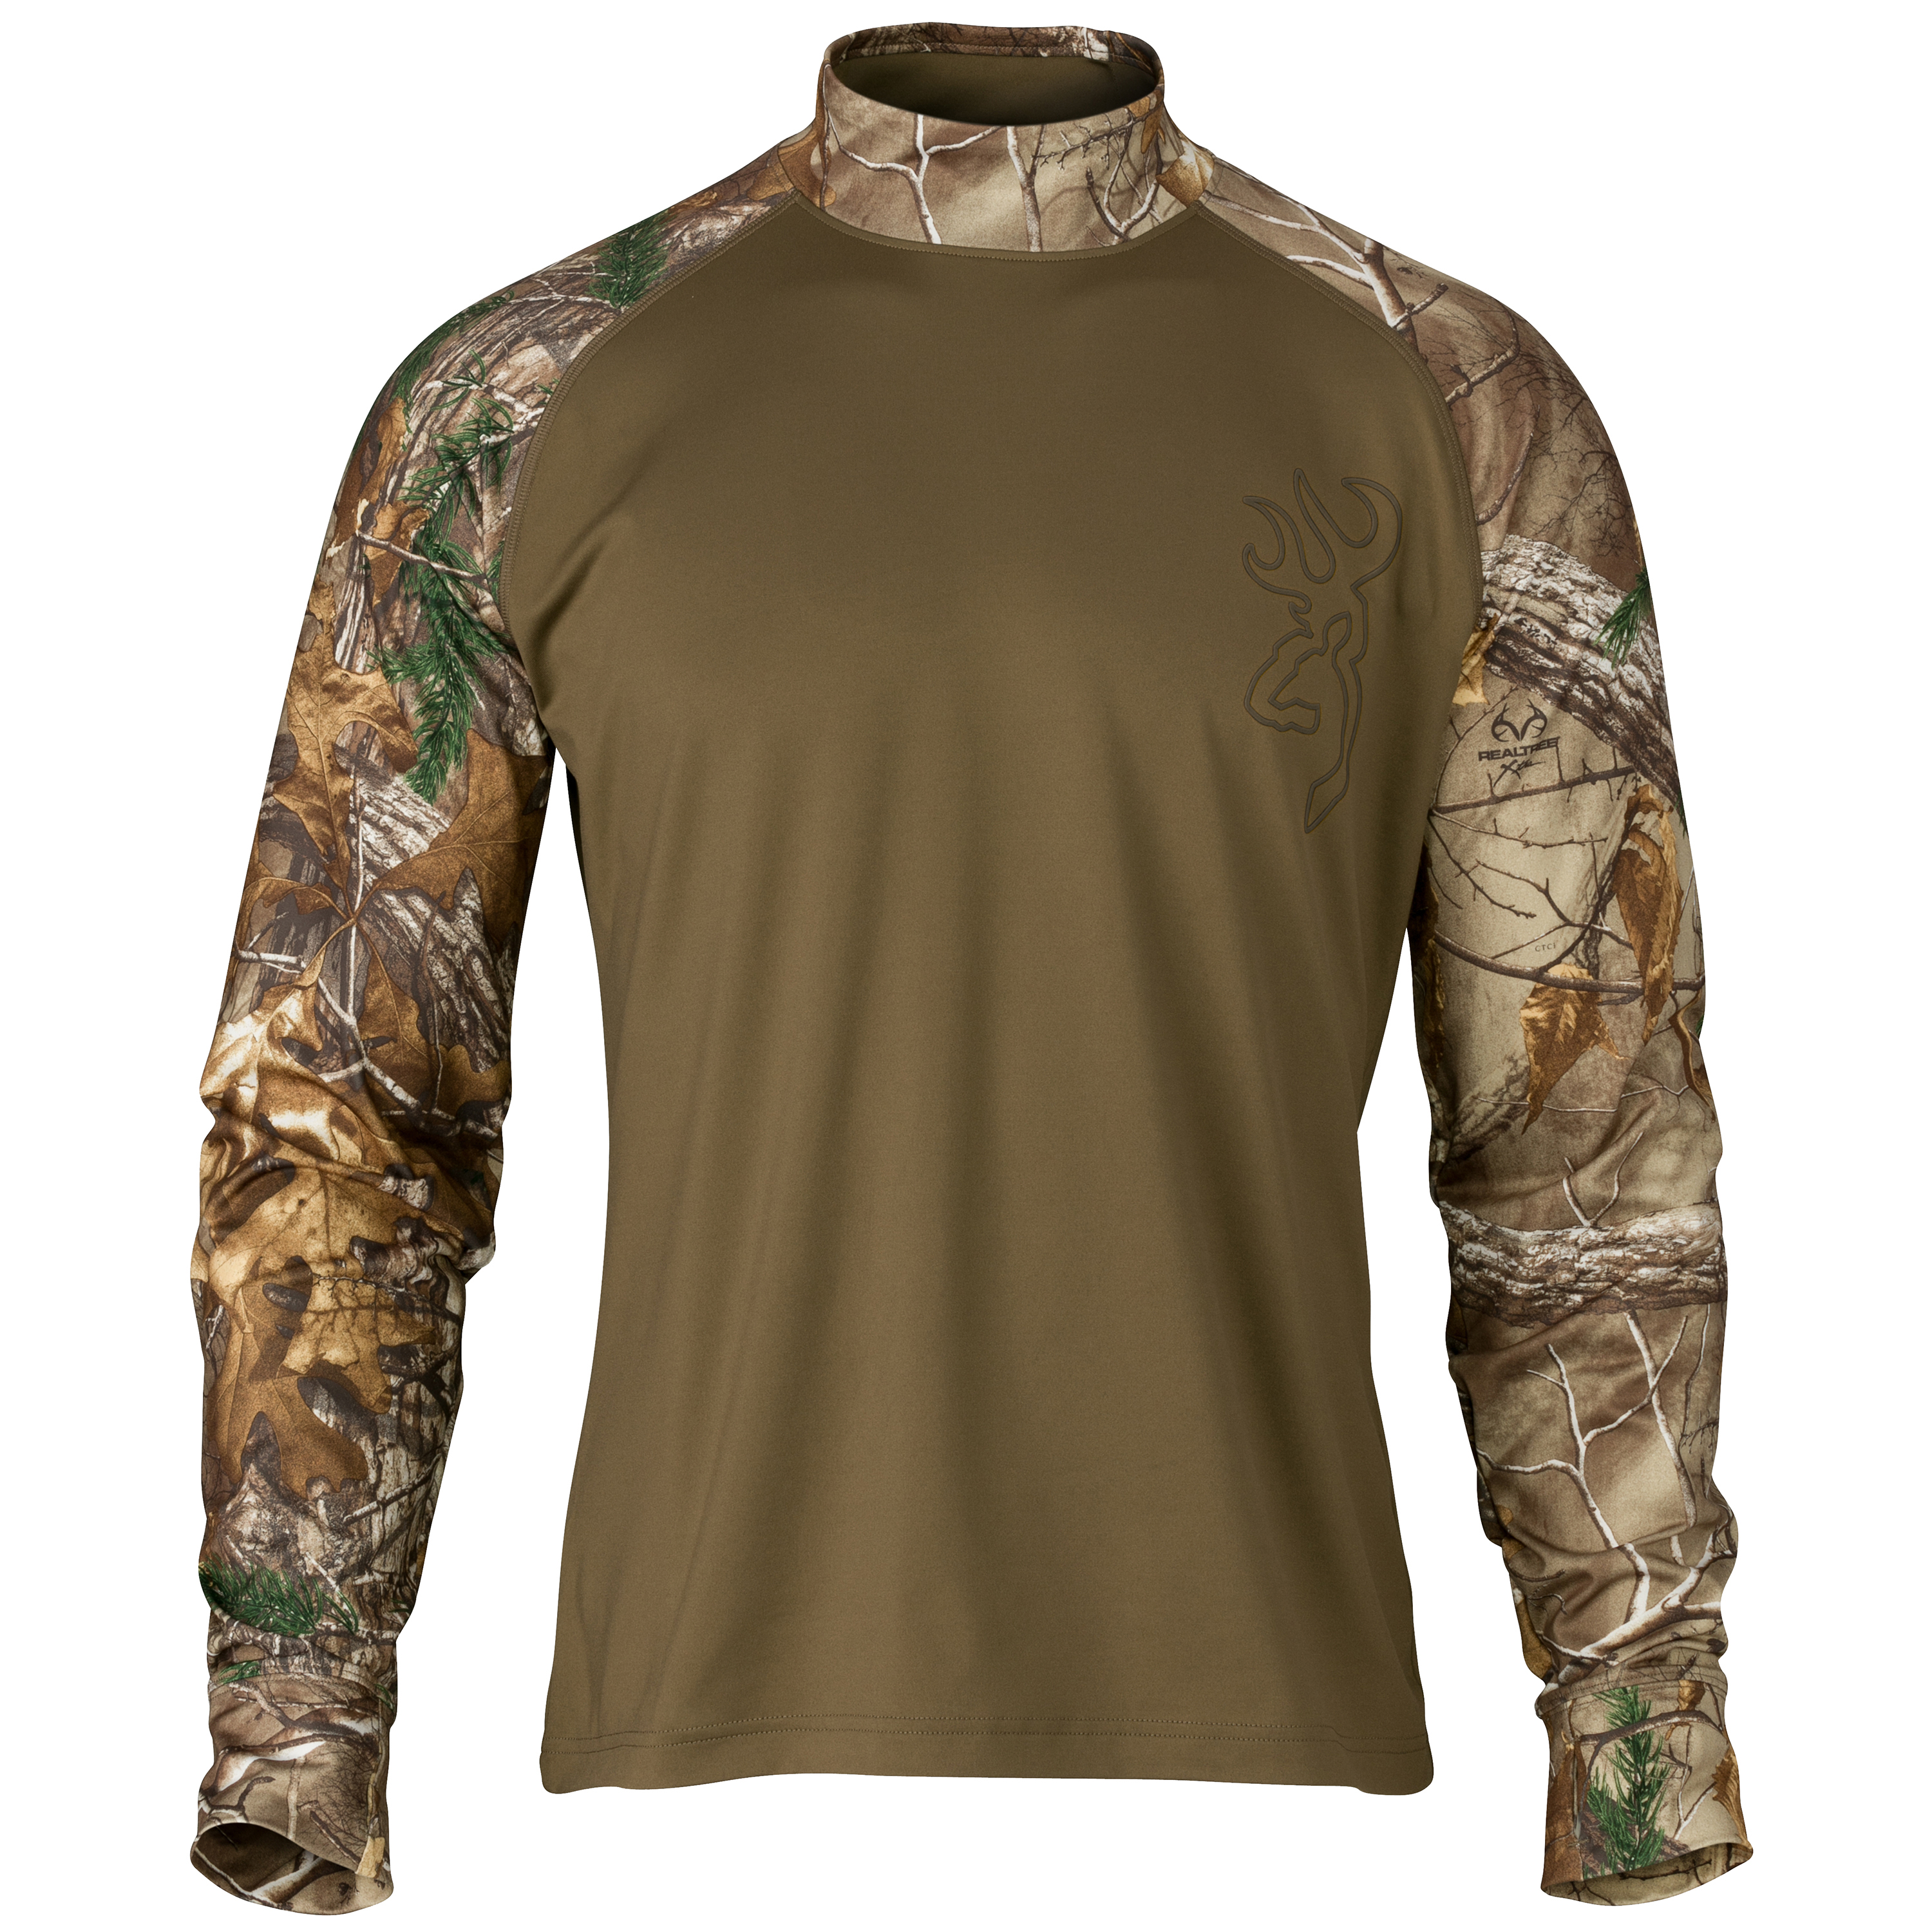 Browning Hell's Canyon Riser Base Layer Top Realtree Xtra, 3X-Large